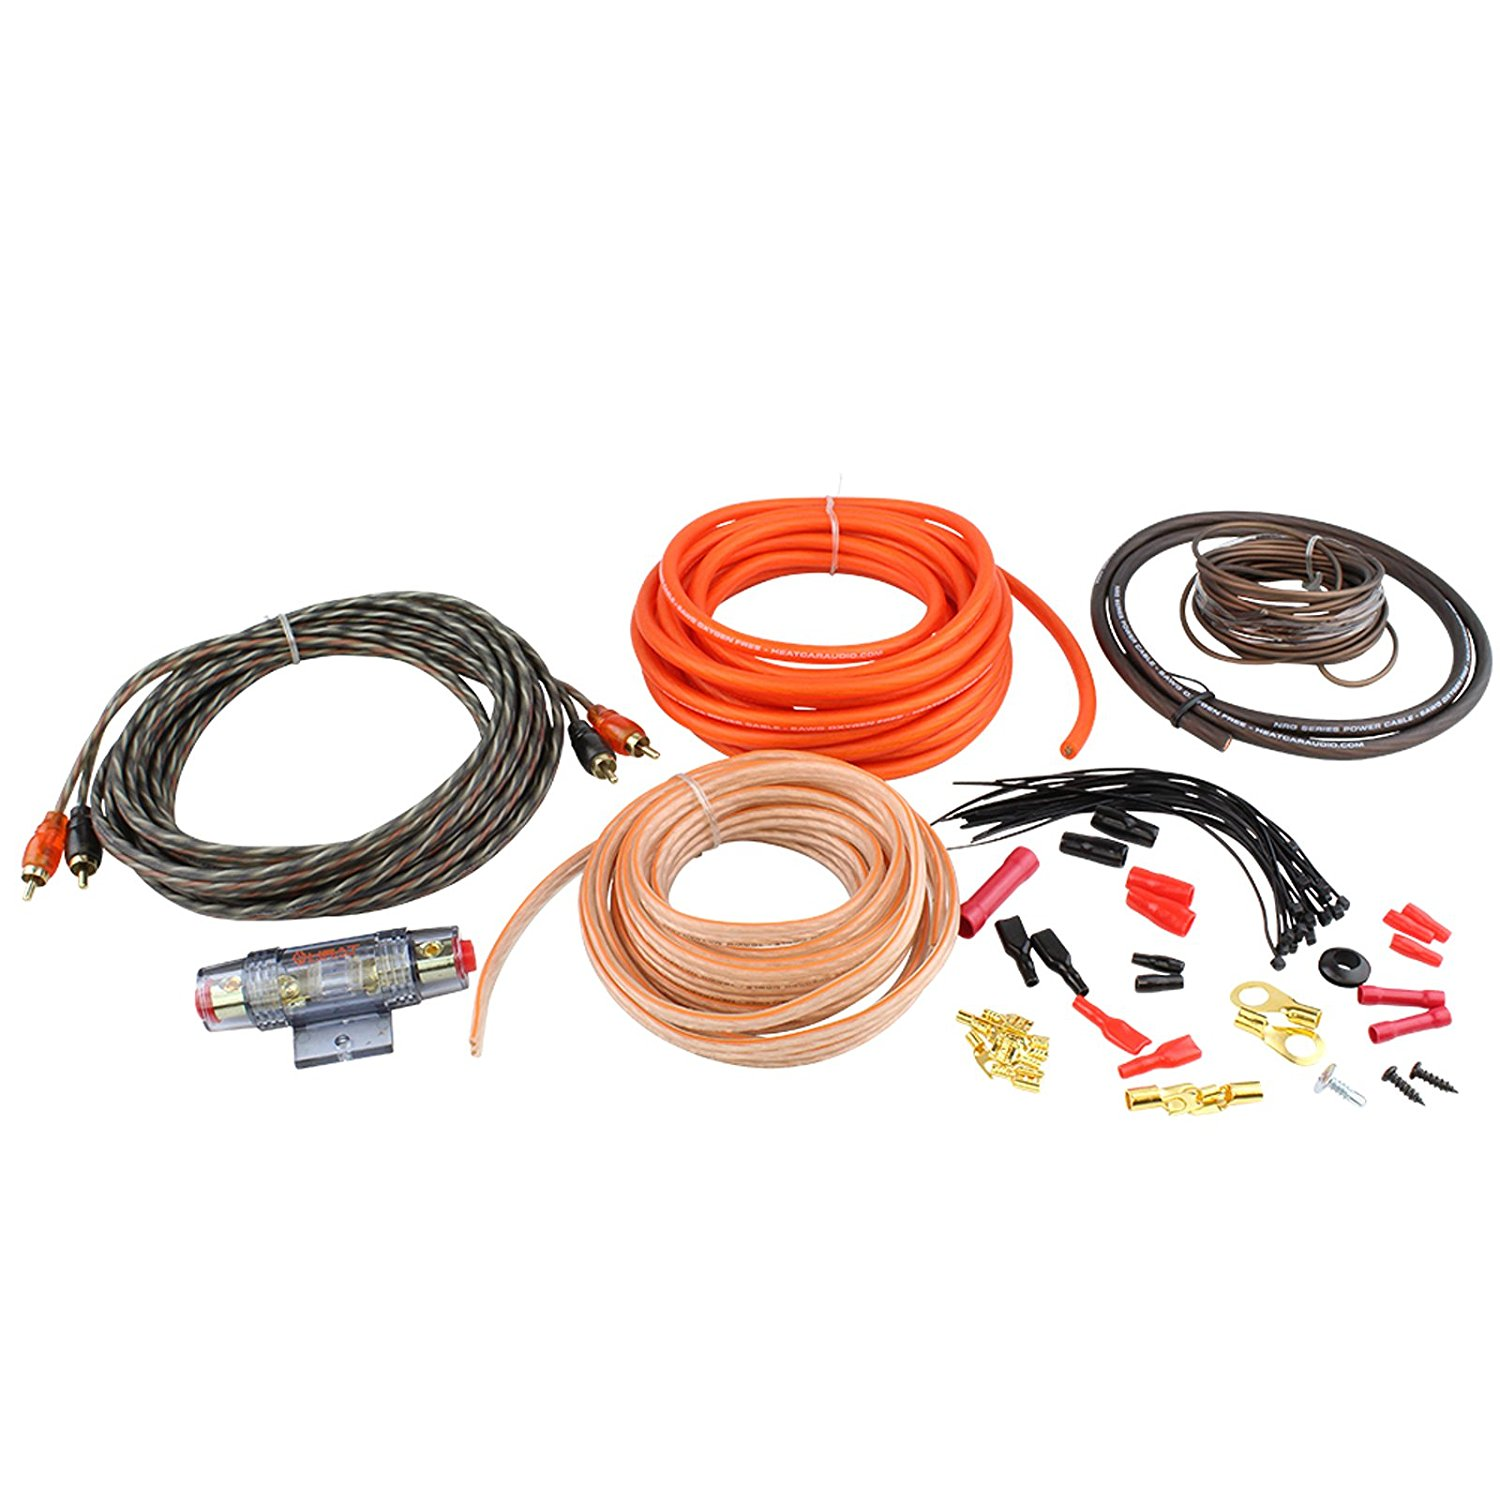 Buy 8 Gauge Car Amplifier Amp Power Installation 100 Ofc Wire Kit Wiring Kit8nrg